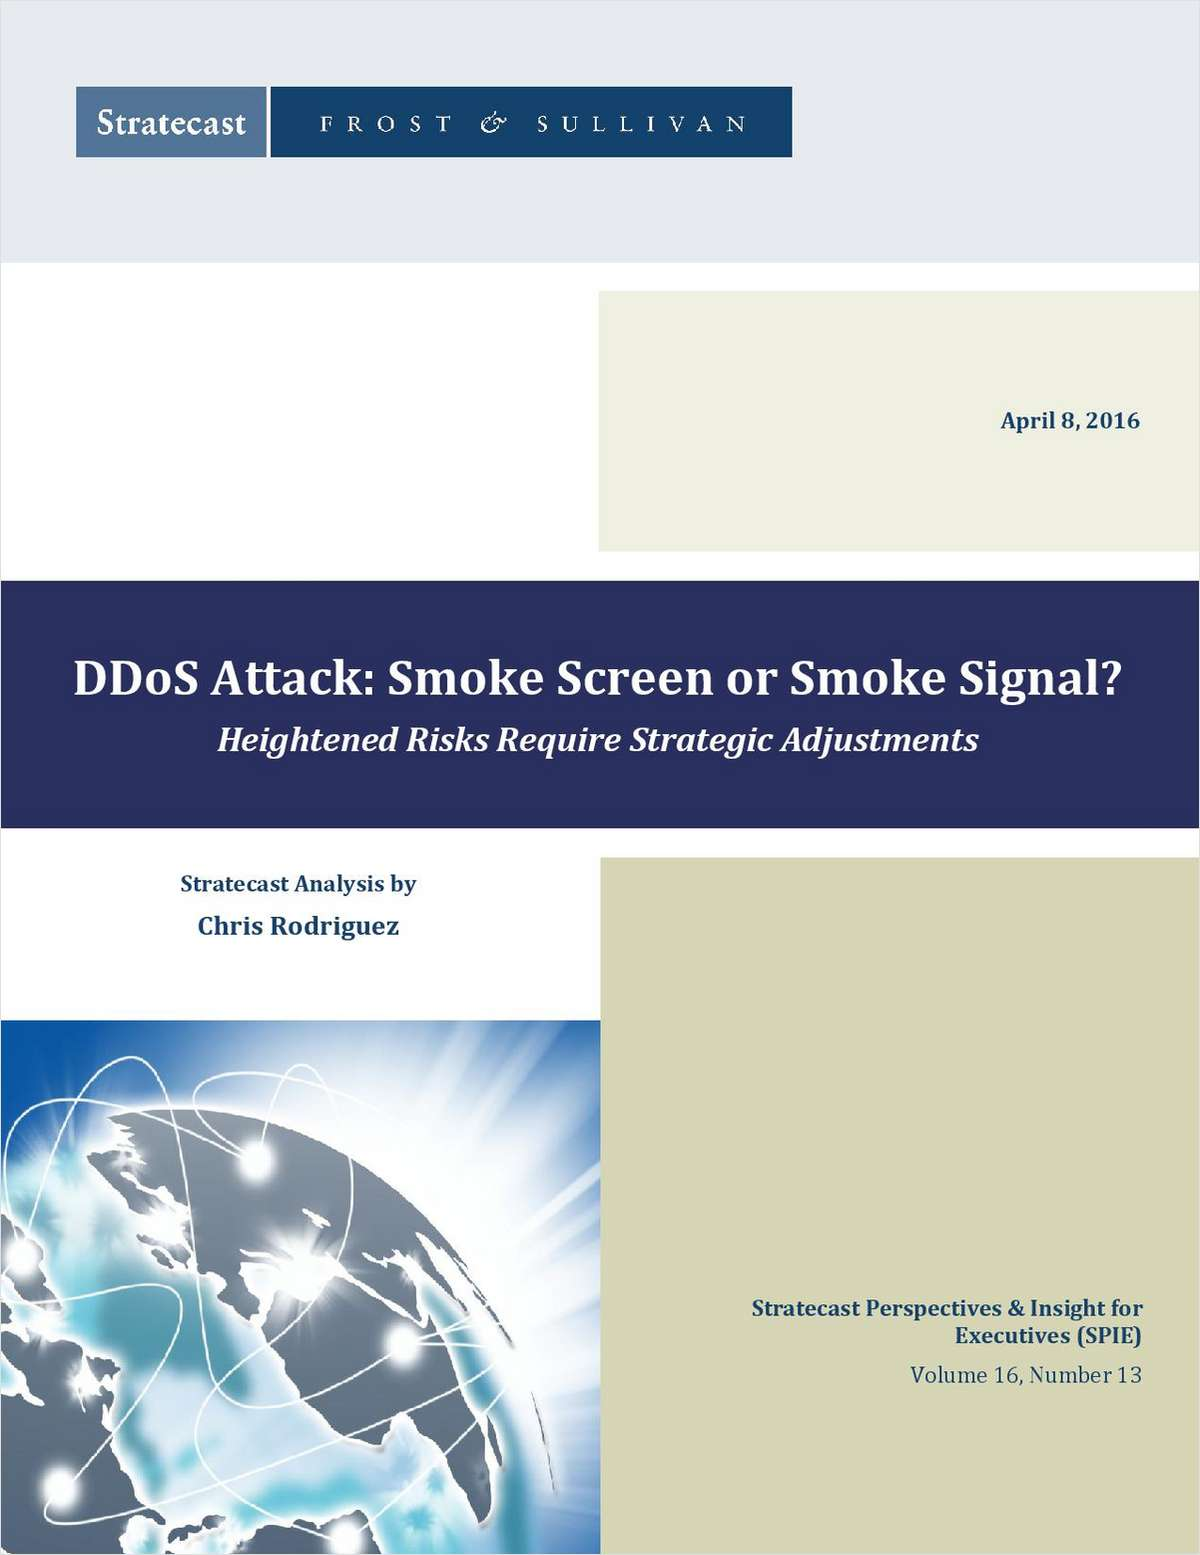 DDoS Attack: Smoke Screen or Smoke Signal?